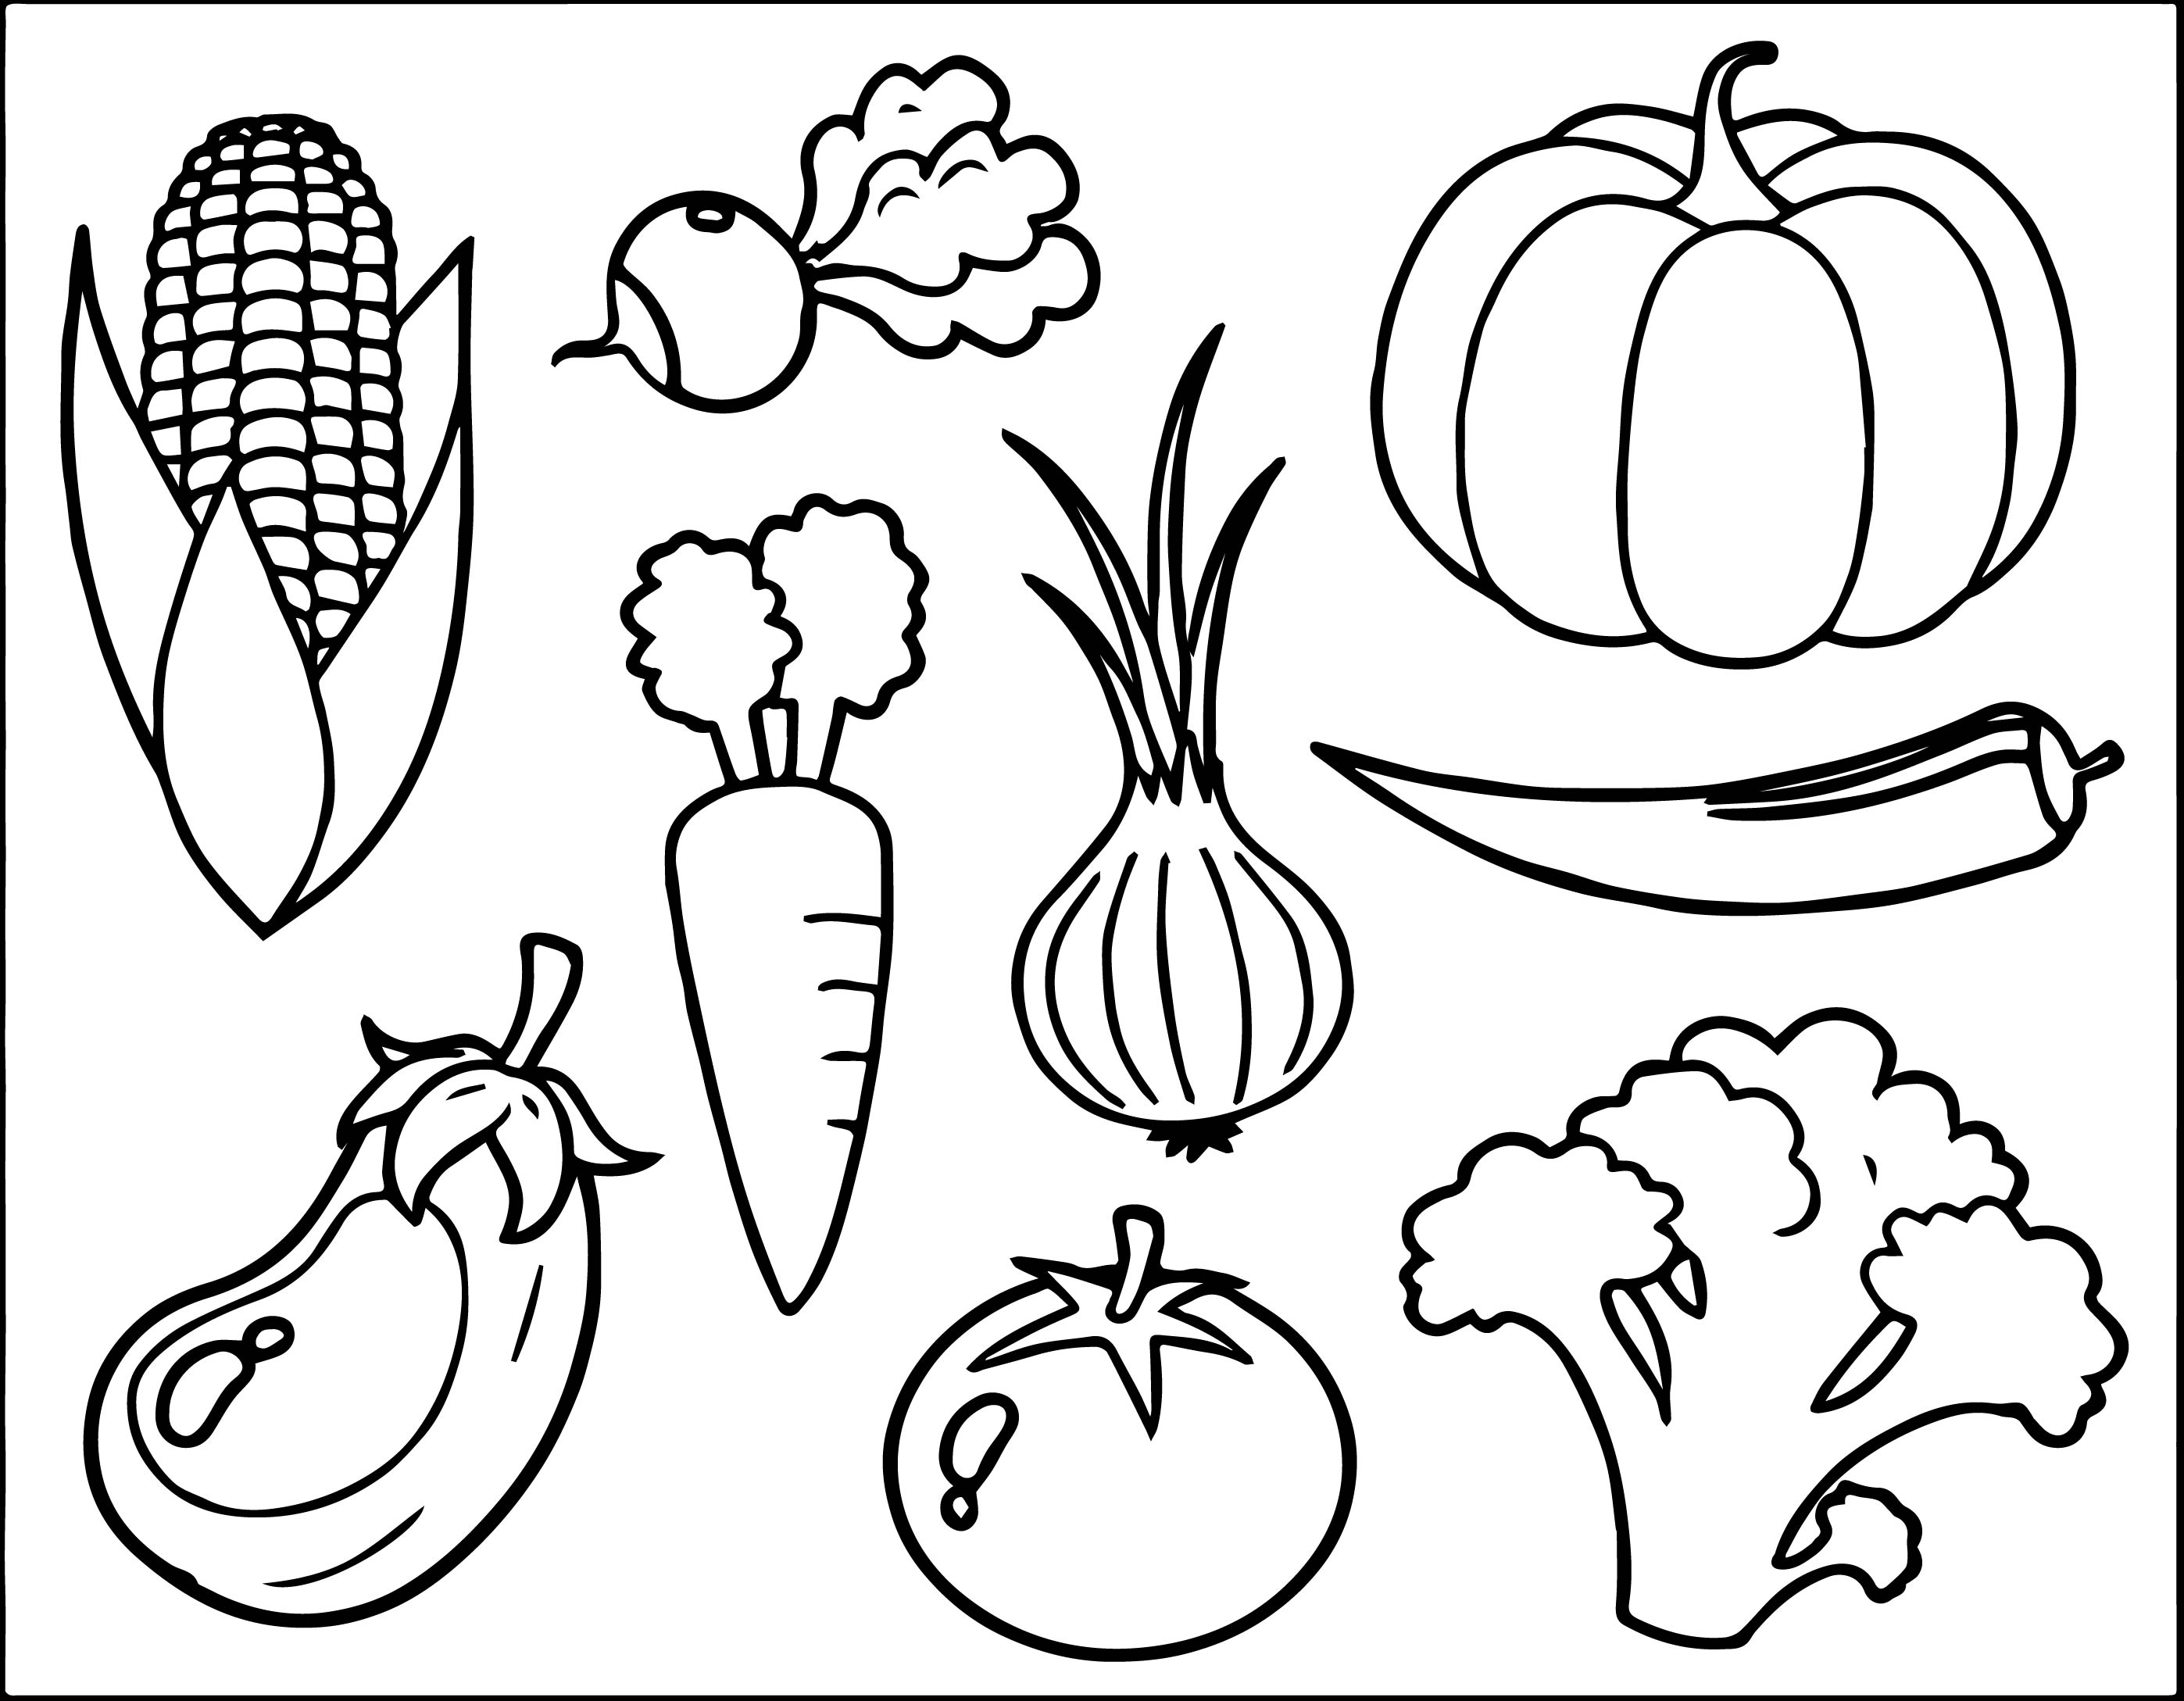 vegetables coloring pages vegetables coloring page wecoloringpagecom pages coloring vegetables